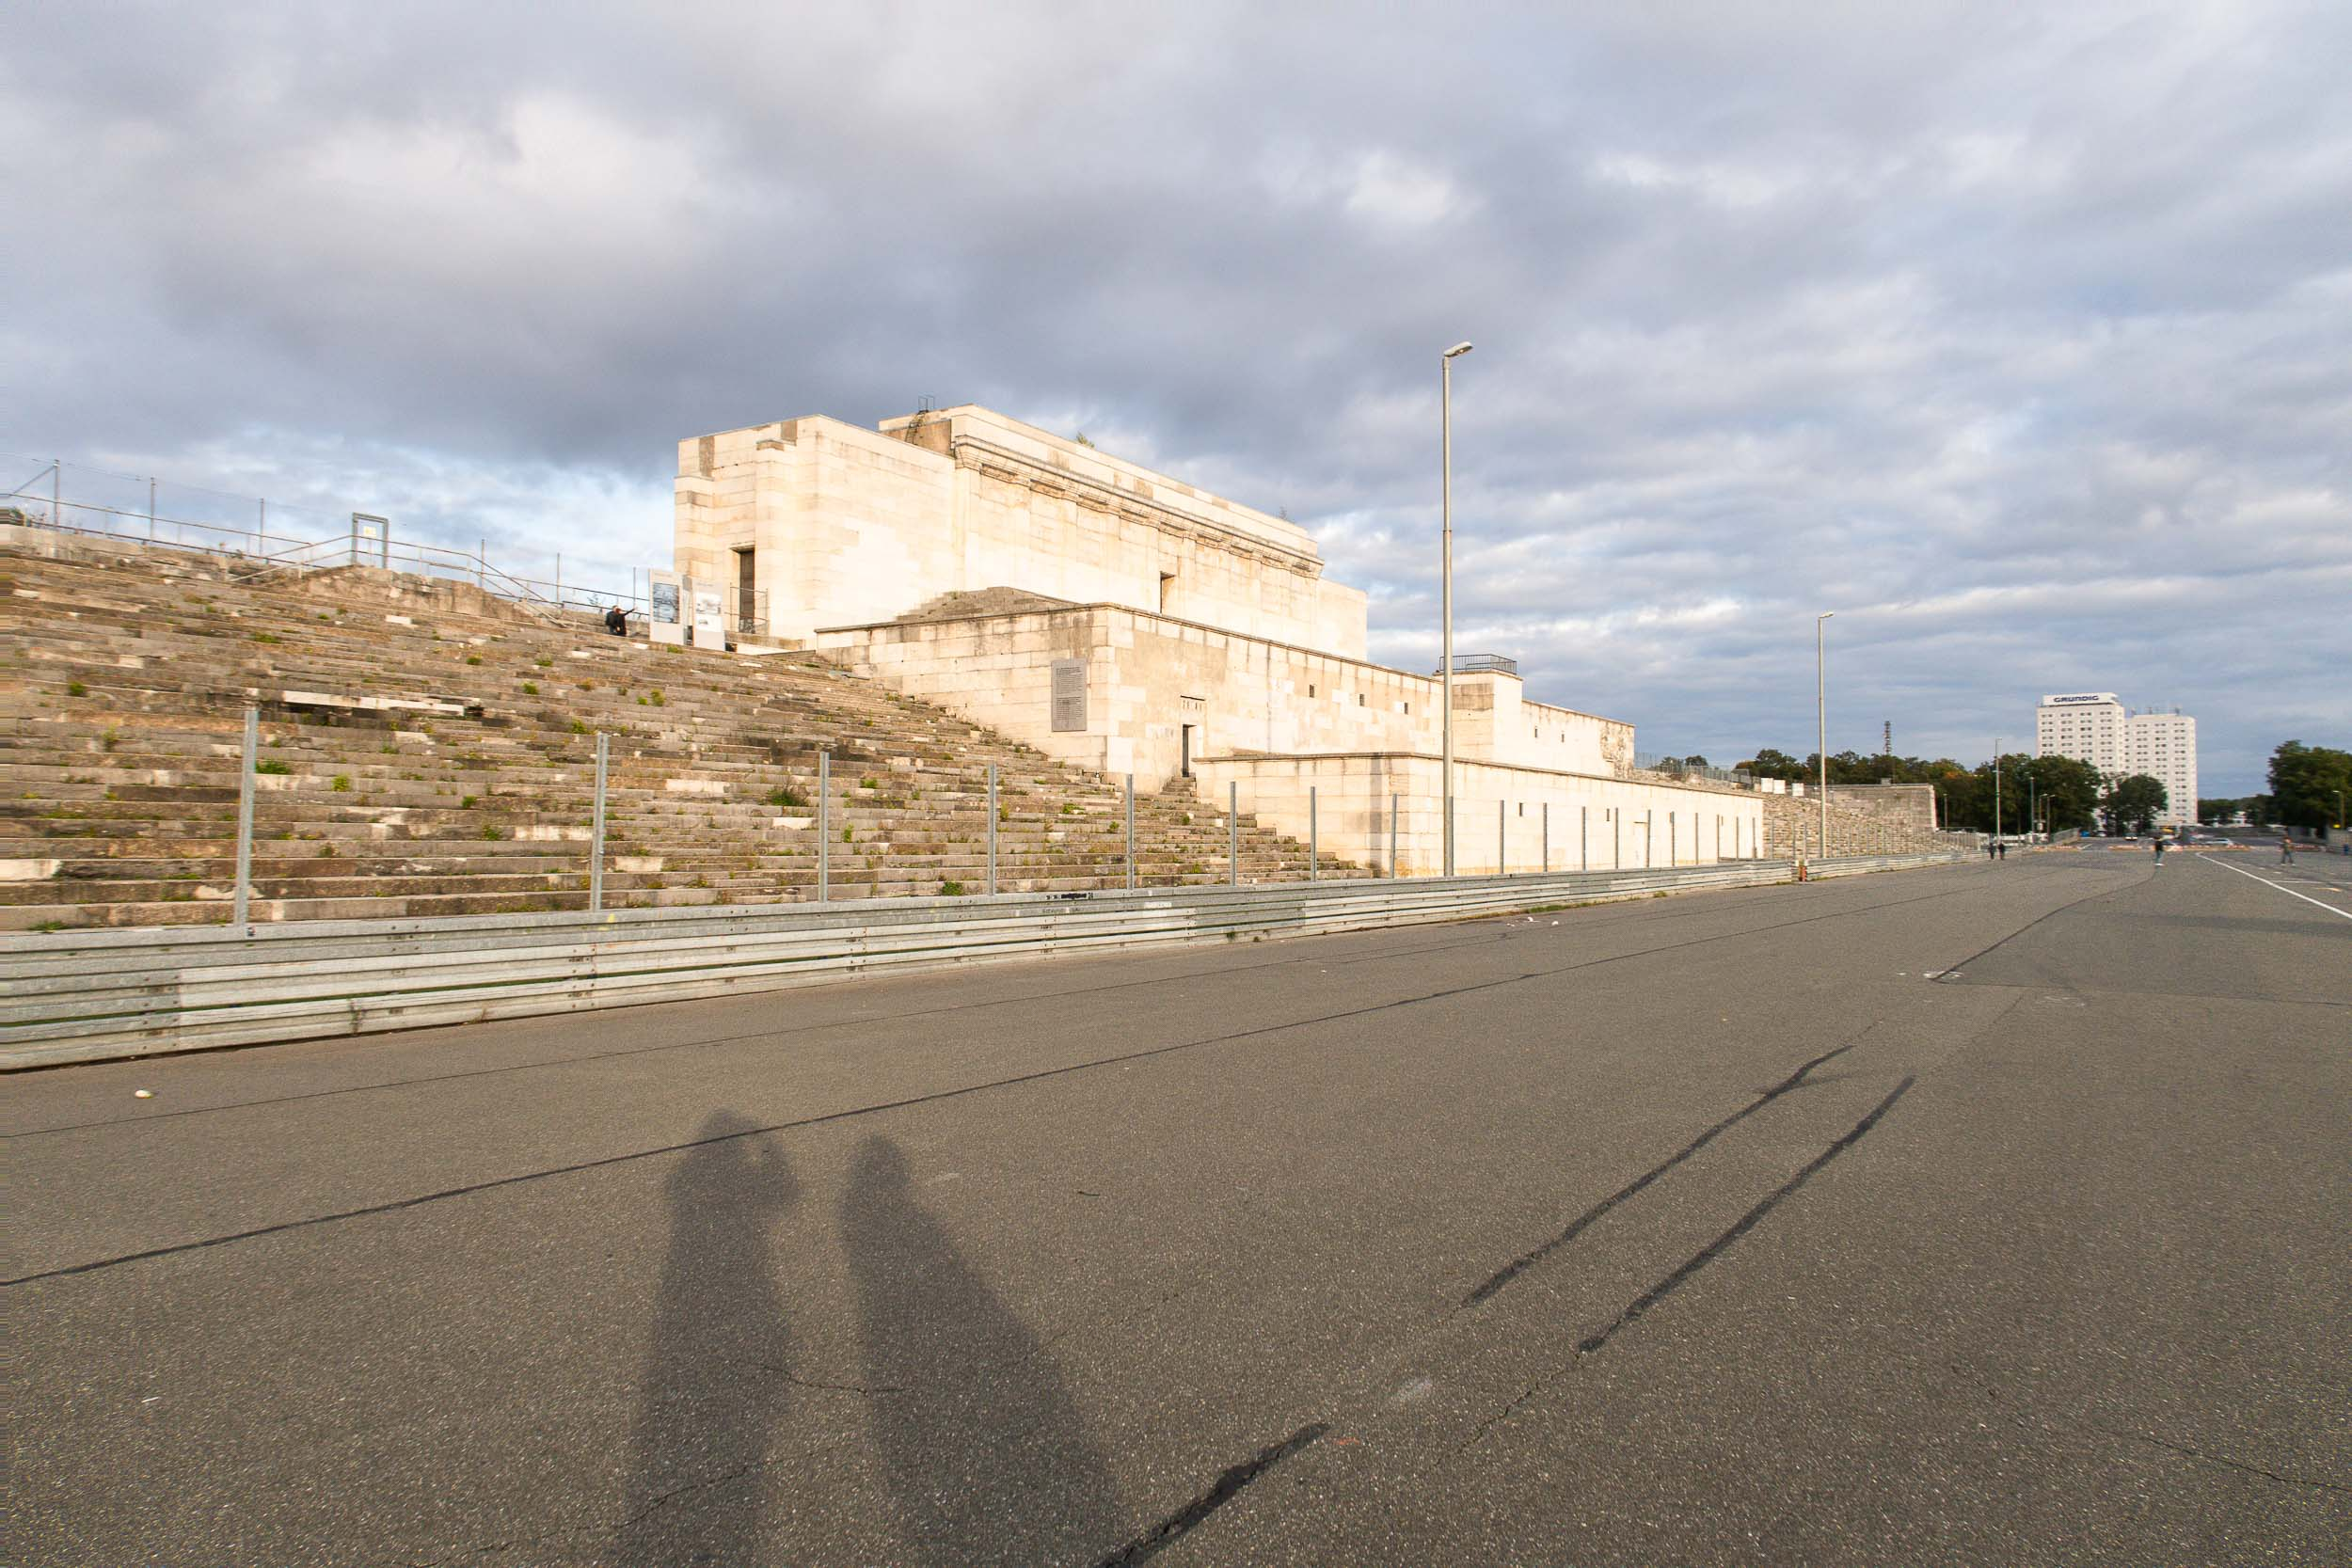 Visiting Hitler's Rally Grounds in Nuremberg, Germany